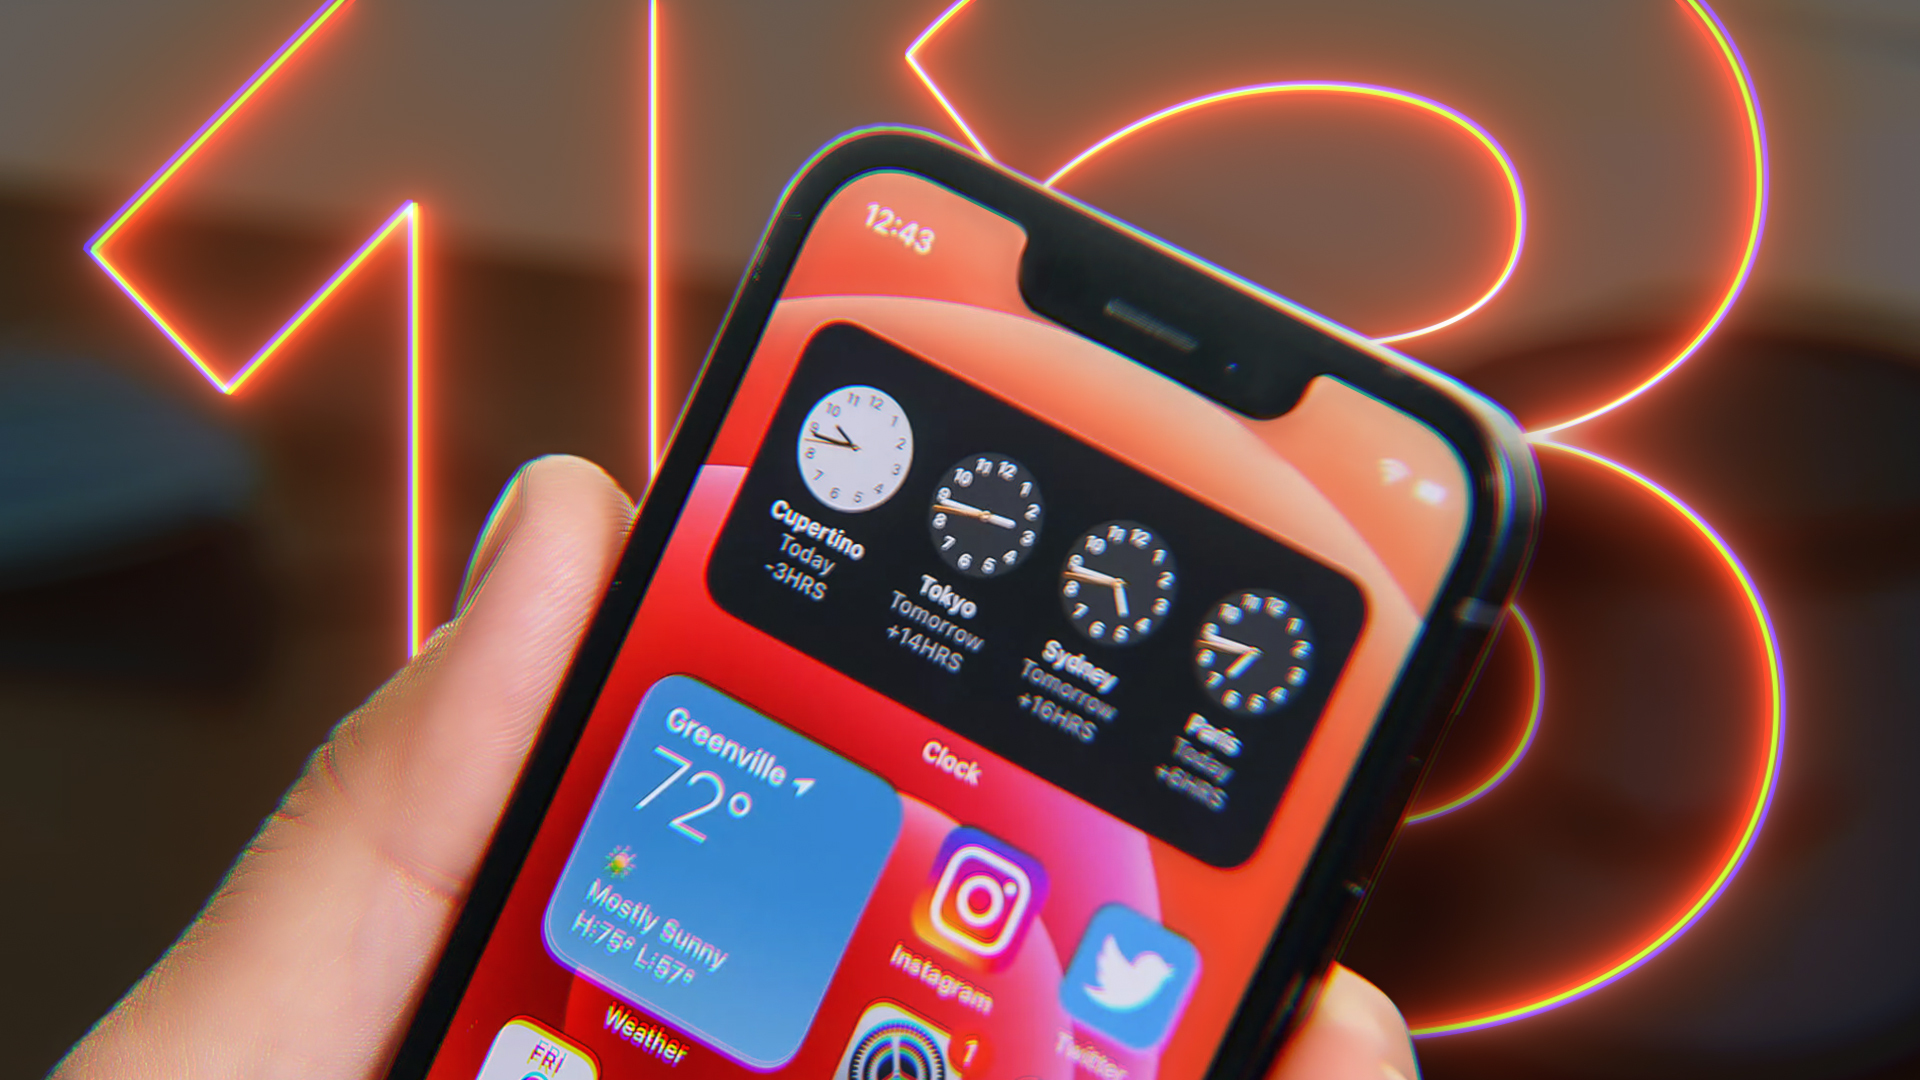 iphone13 rumorsaug2021 00000 | iPhone 13: The most exciting rumors about release date, price, specs and more | The Paradise